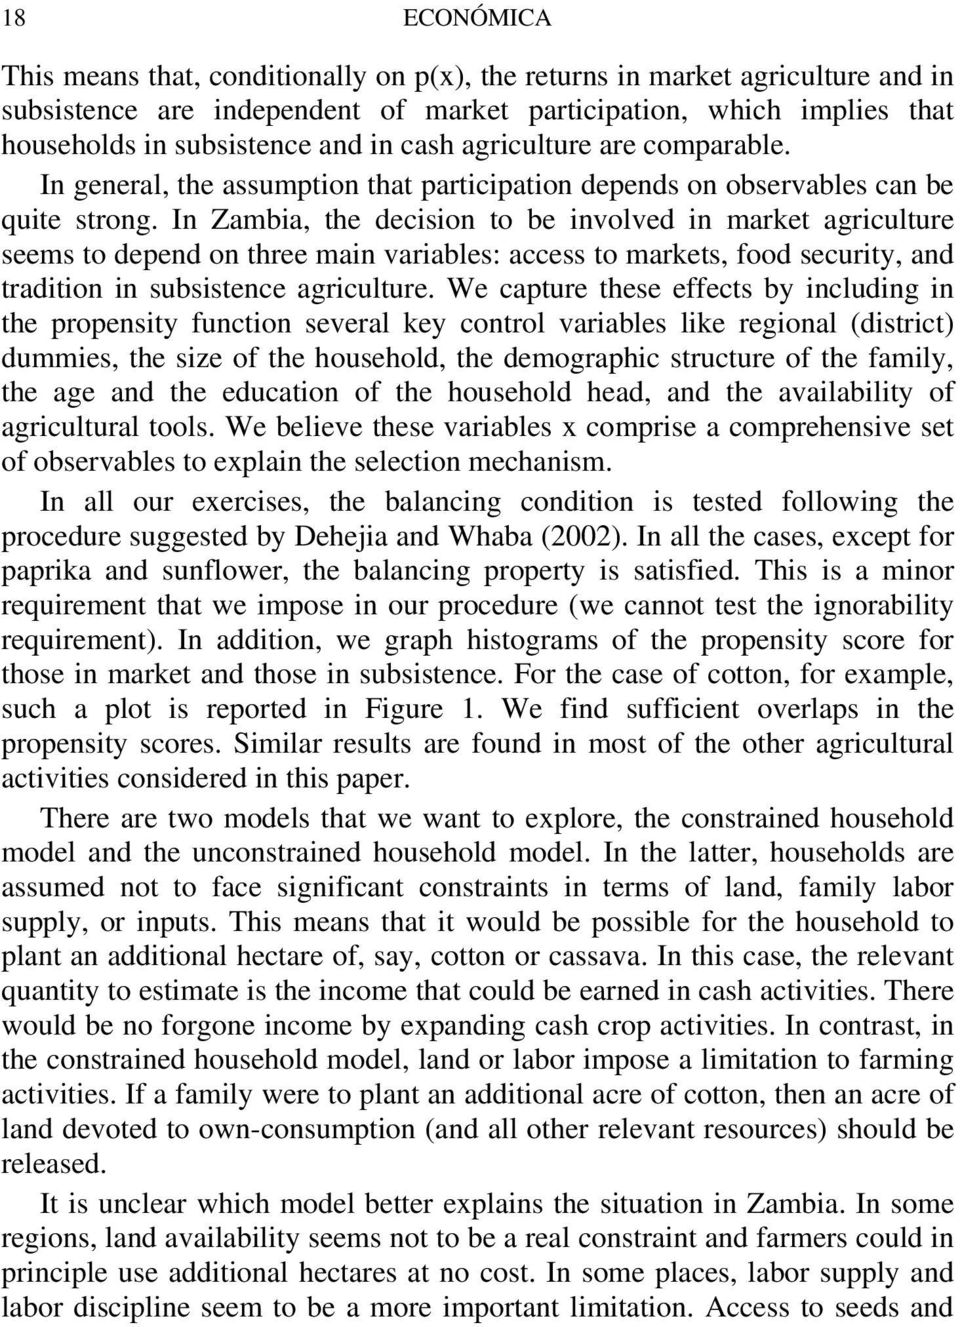 In Zambia, the decision to be involved in market agriculture seems to depend on three main variables: access to markets, food security, and tradition in subsistence agriculture.